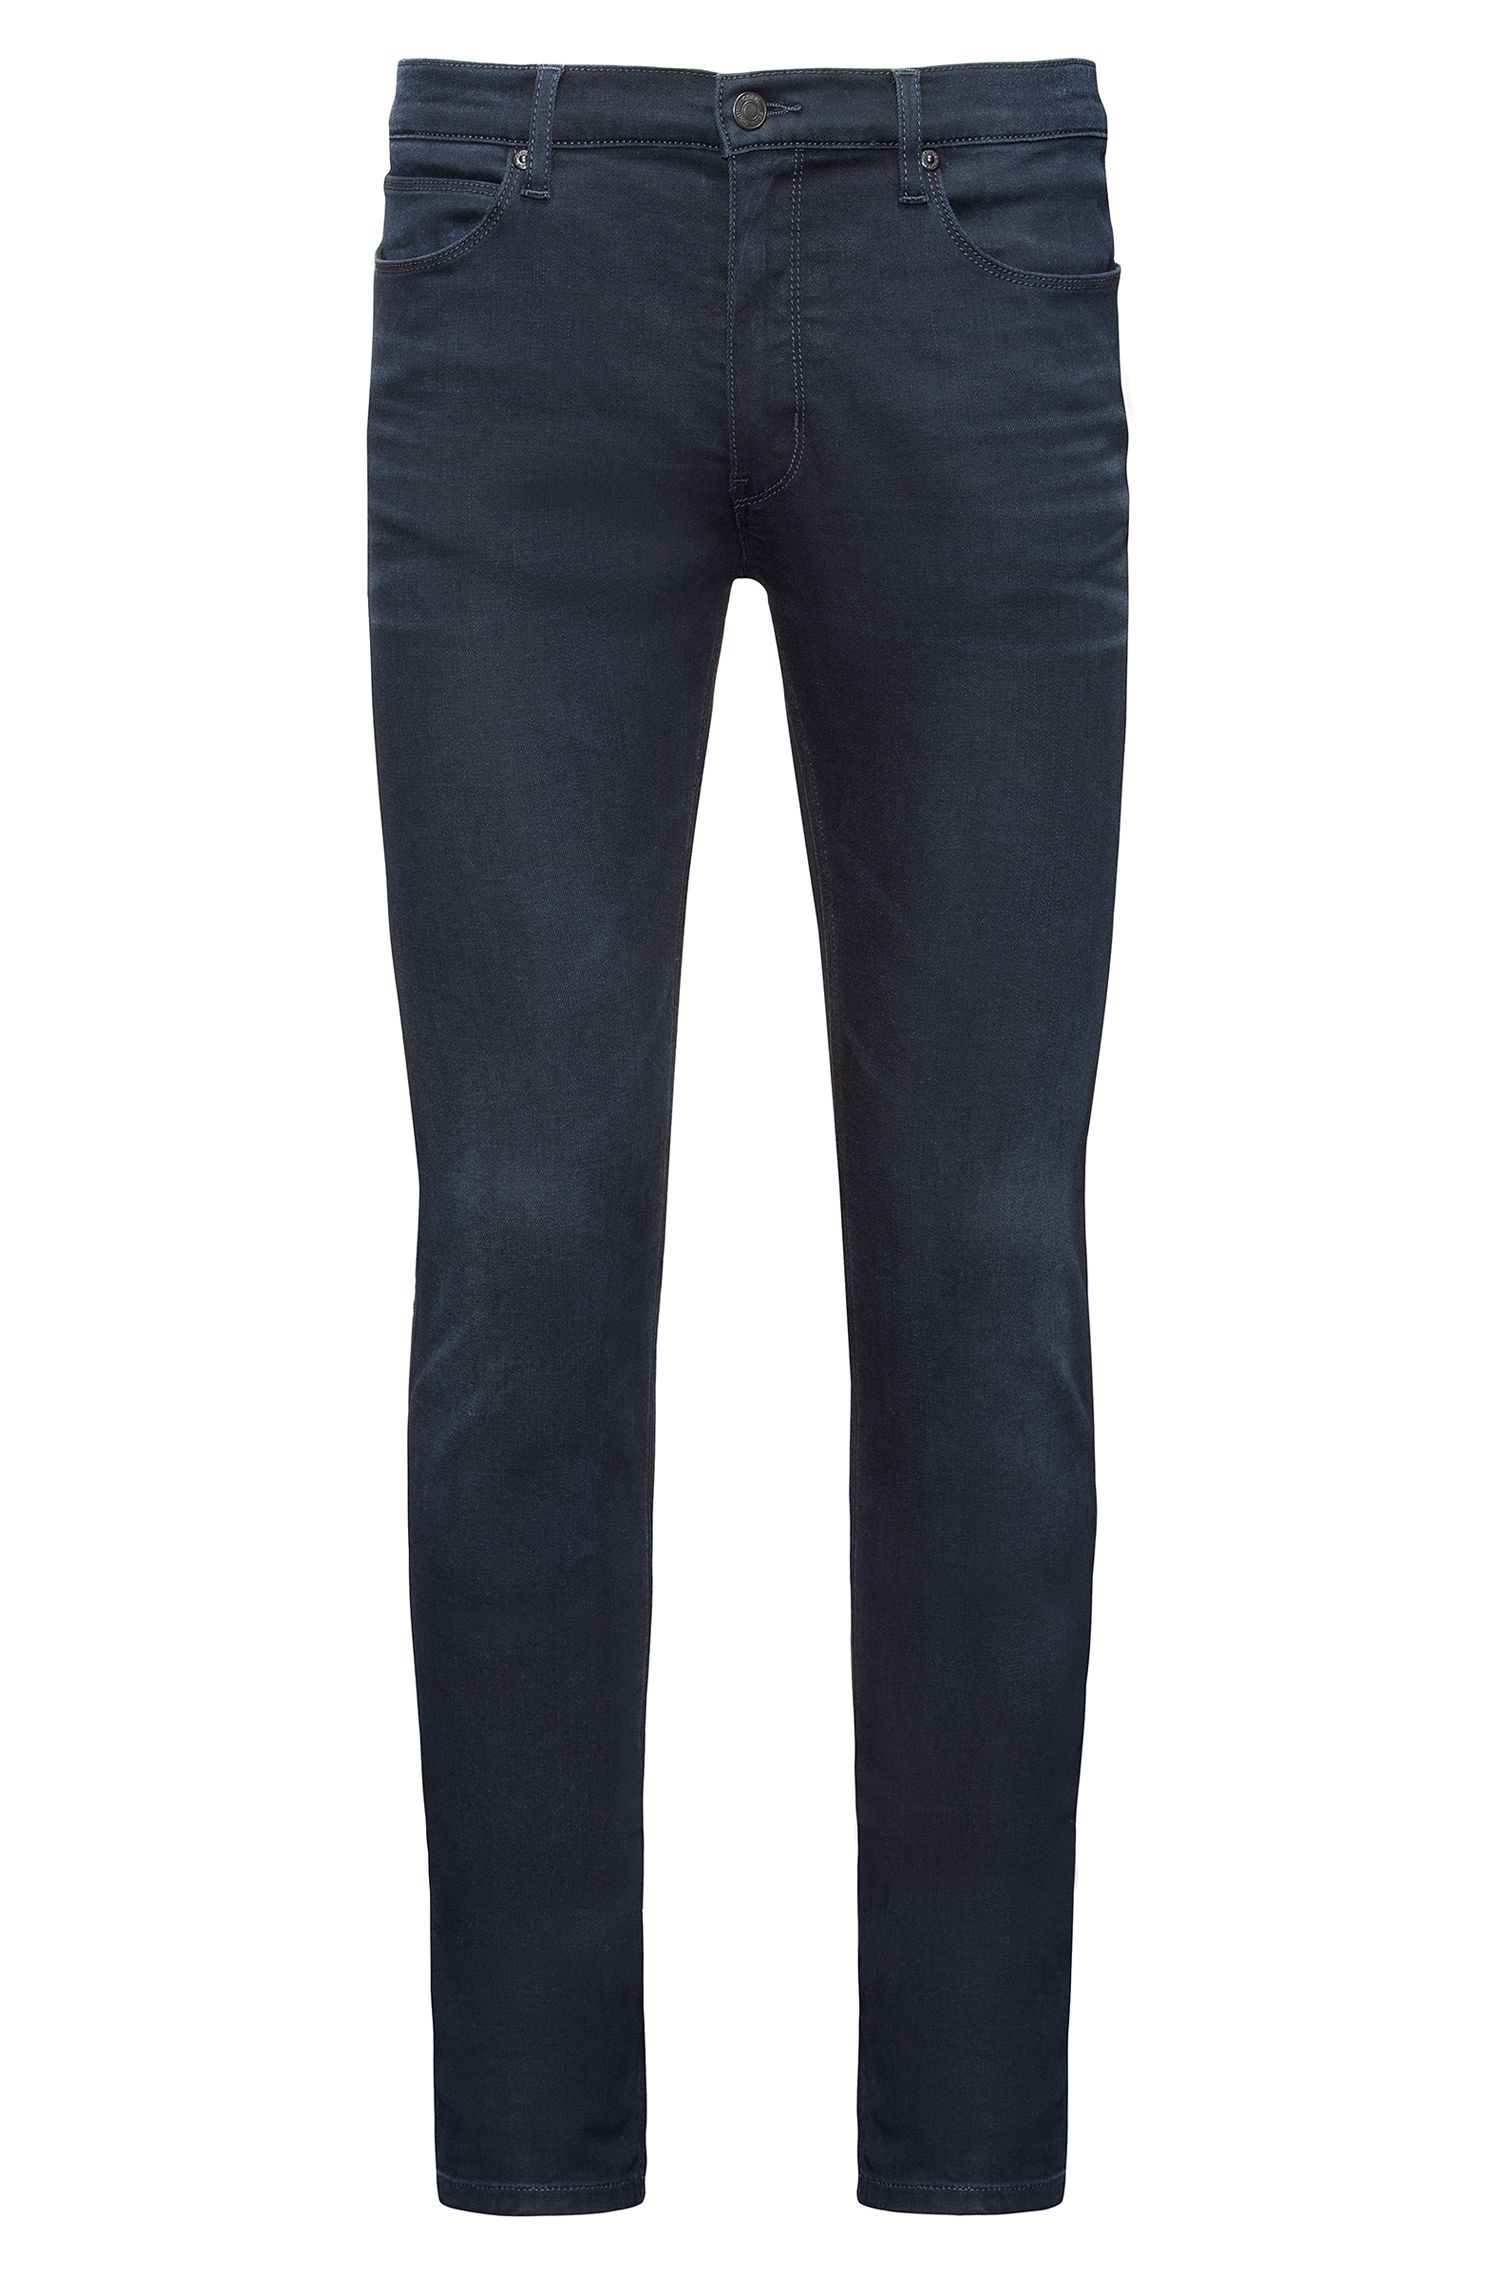 Skinny-Fit Jeans aus komfortablem Stretch Denim